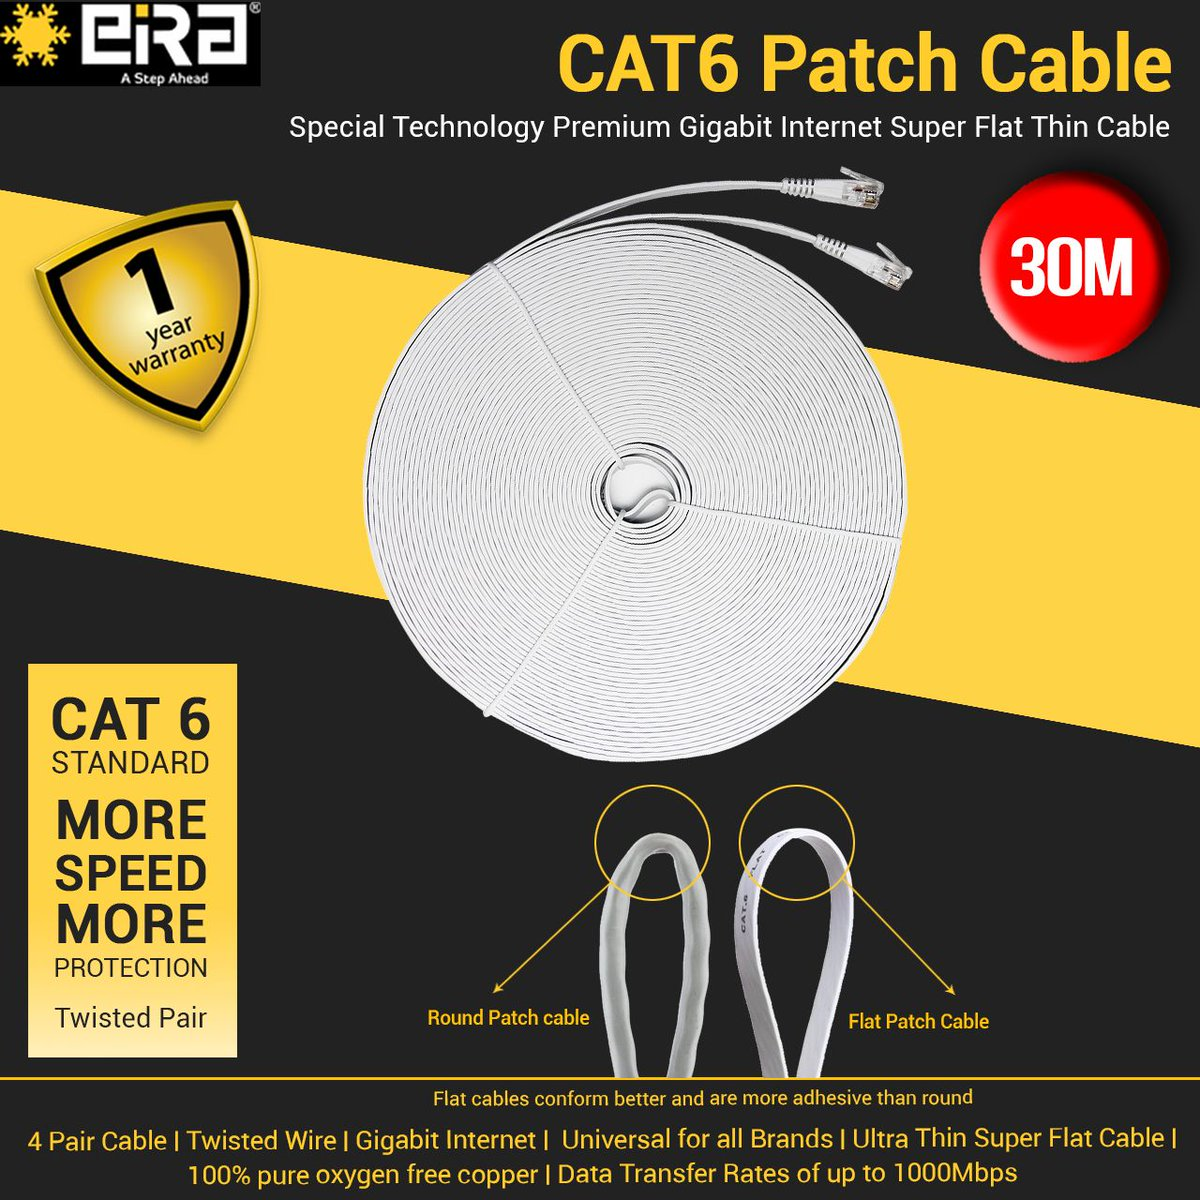 Eira Tek On Twitter This Cat6 30m Patch Cable Help Is A Ultra Internet 4 Pair Wiring Diagram And Transfers Data Upto 1000 Mbps Visit Our Website Https Buffly 2vyzzqp Patchcable Ports Highspeed Superspeed Color Speed Hdtv